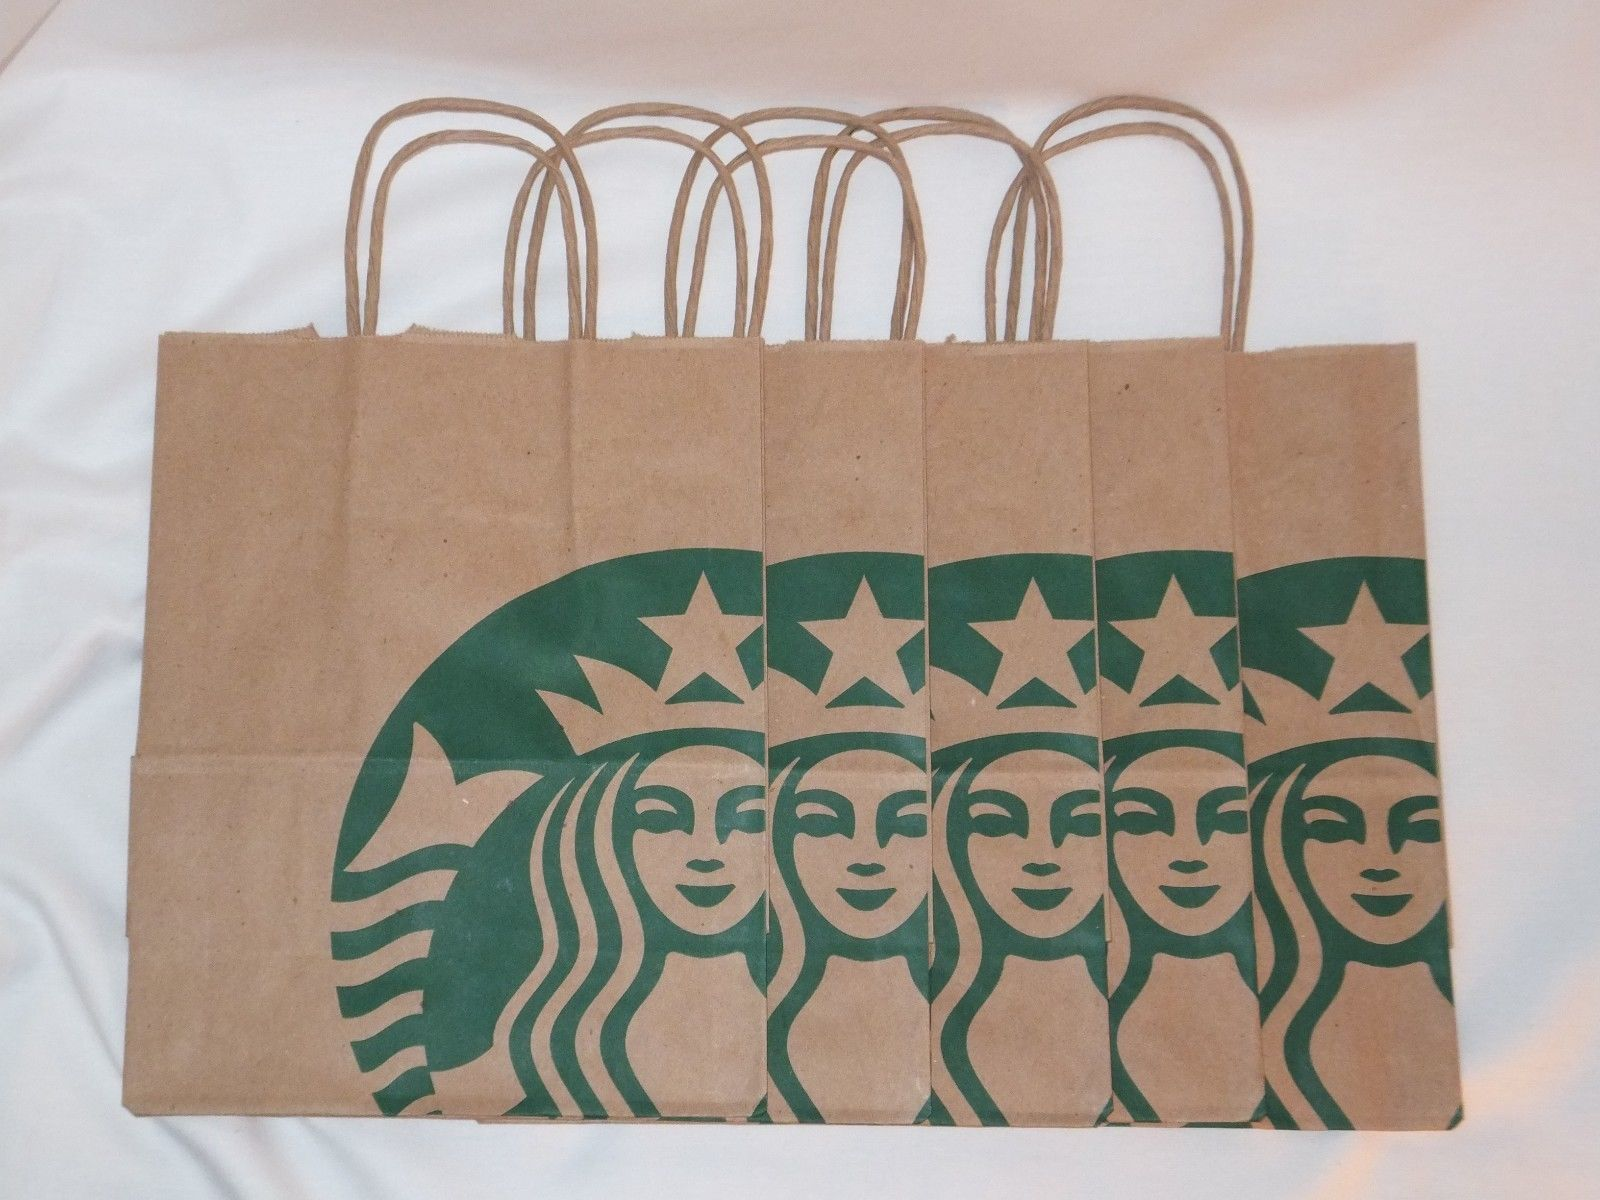 10x starbucks reusable brown kraft paper shopping lunch gift bags 10 starbucks reusable brown paper bags with handles green tissue paper used only for jeuxipadfo Choice Image